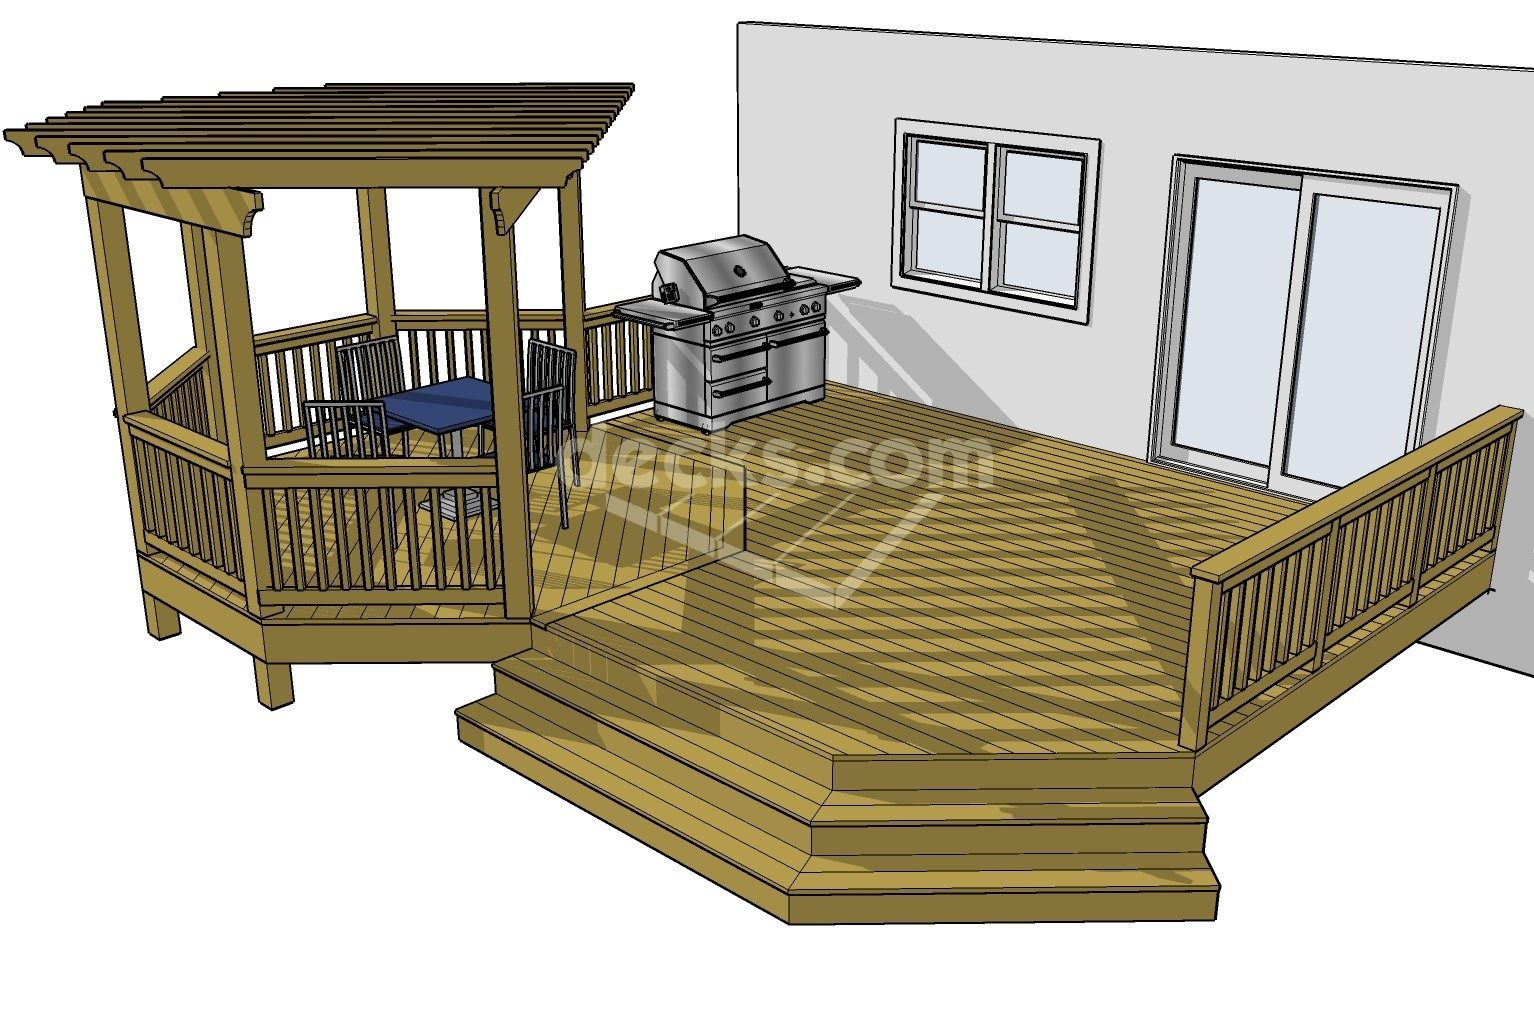 10 tips for designing a great deck On free deck design plans